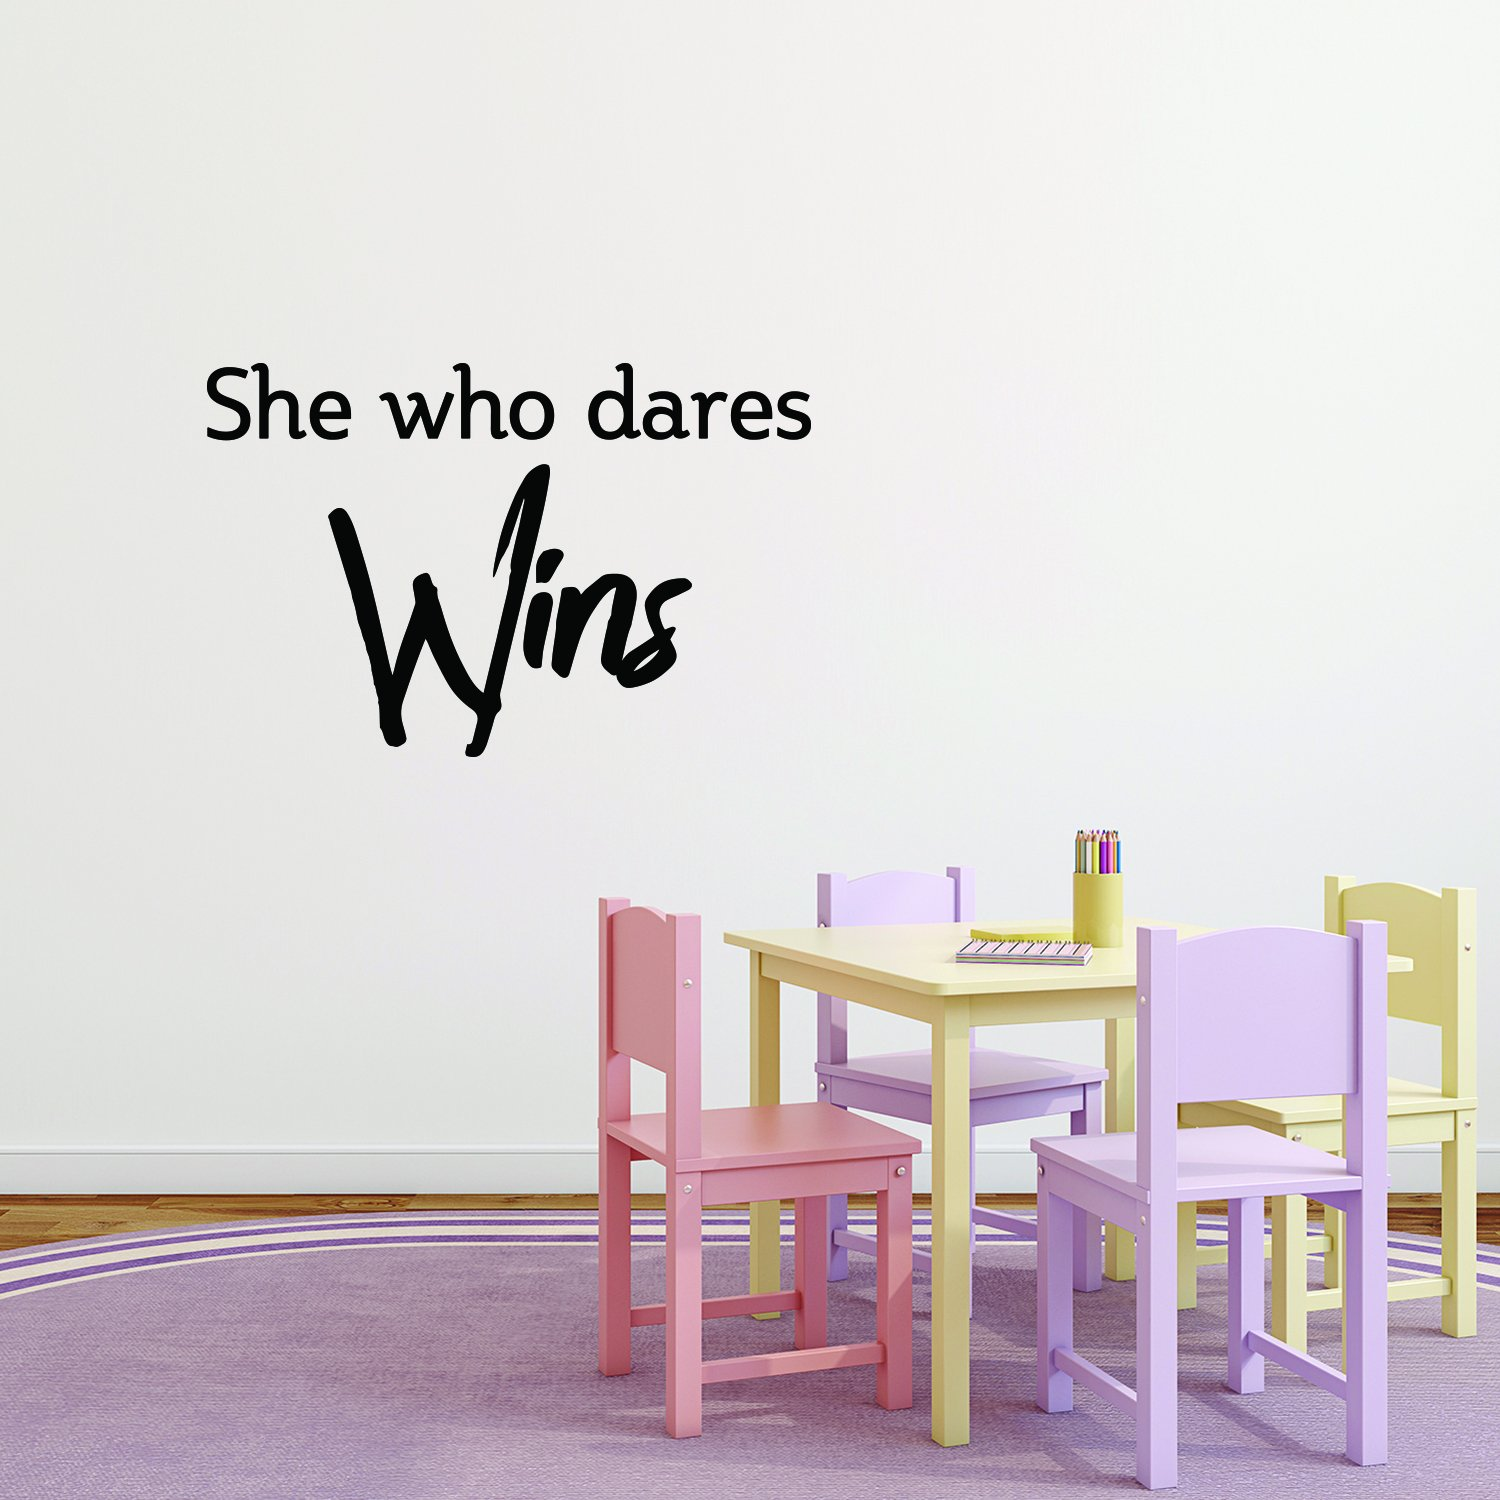 Diy she who dares wins Vinyl Wall Sticker Home Decor Stikers For Kids Rooms Waterproof Art Decal